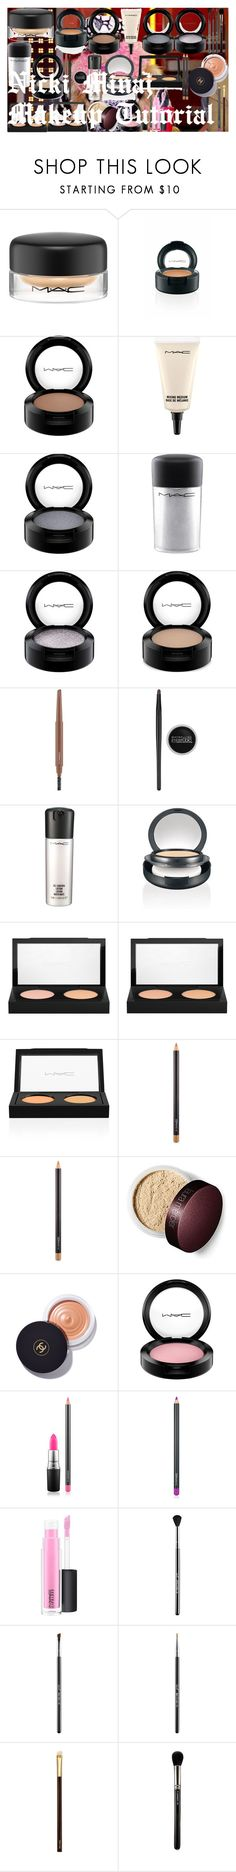 Nicki Minaj Makeup Tutorial by oroartye-1 on Polyvore featuring beauty, Tom Ford, MAC Cosmetics, Chanel, Sigma and Maybelline